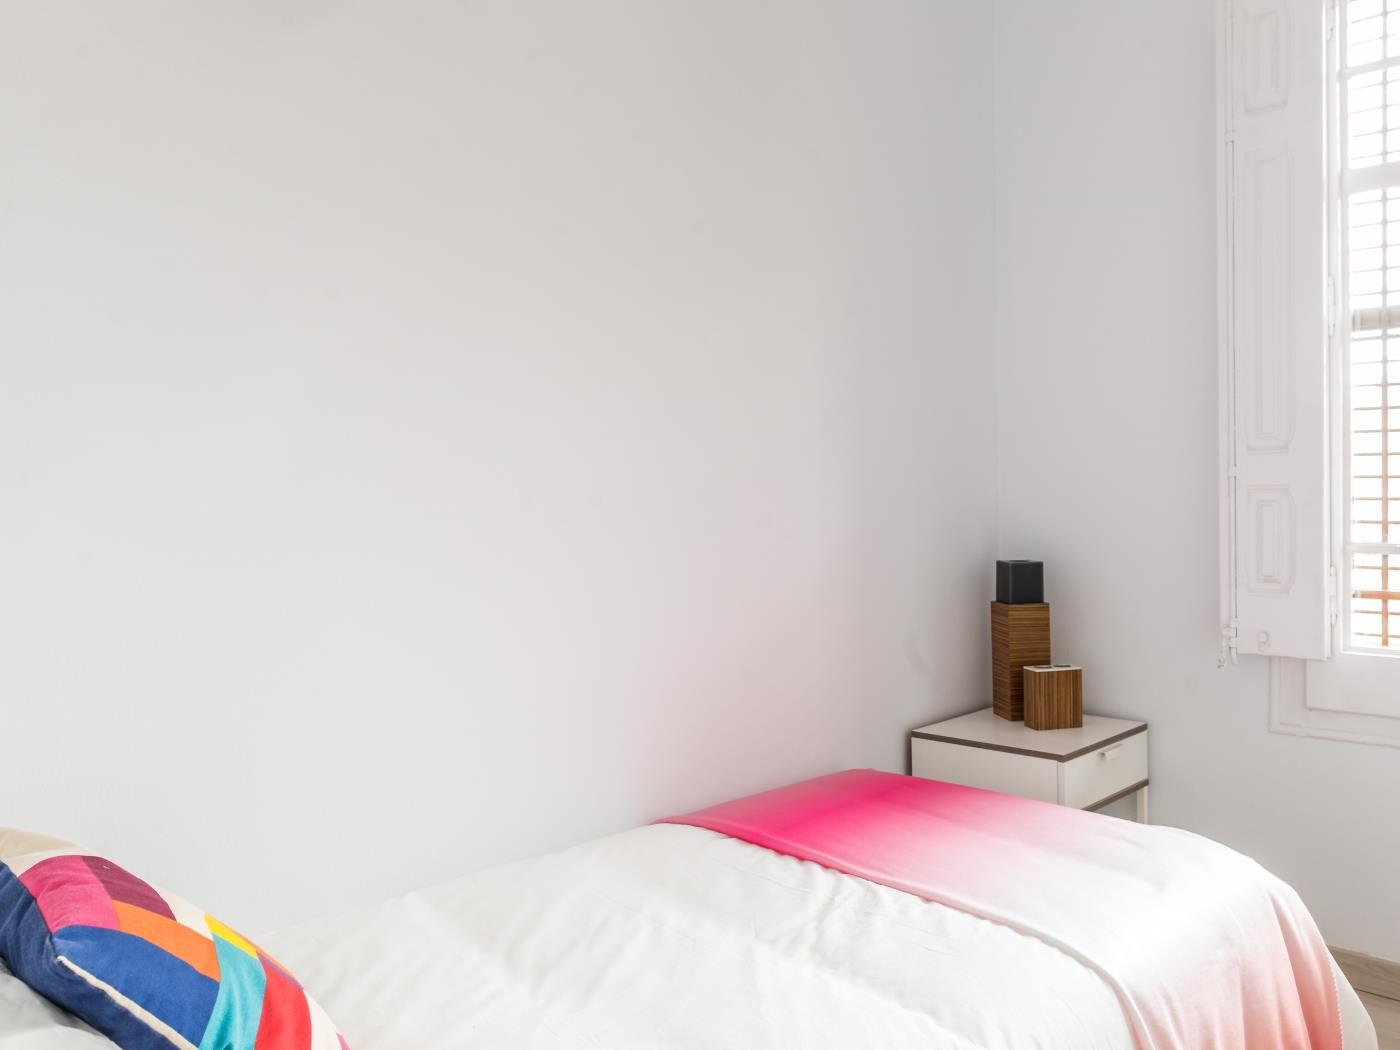 Spacious 2BR flat in central Barcelona with private balcony and shared terrace - My Space Barcelona Apartments